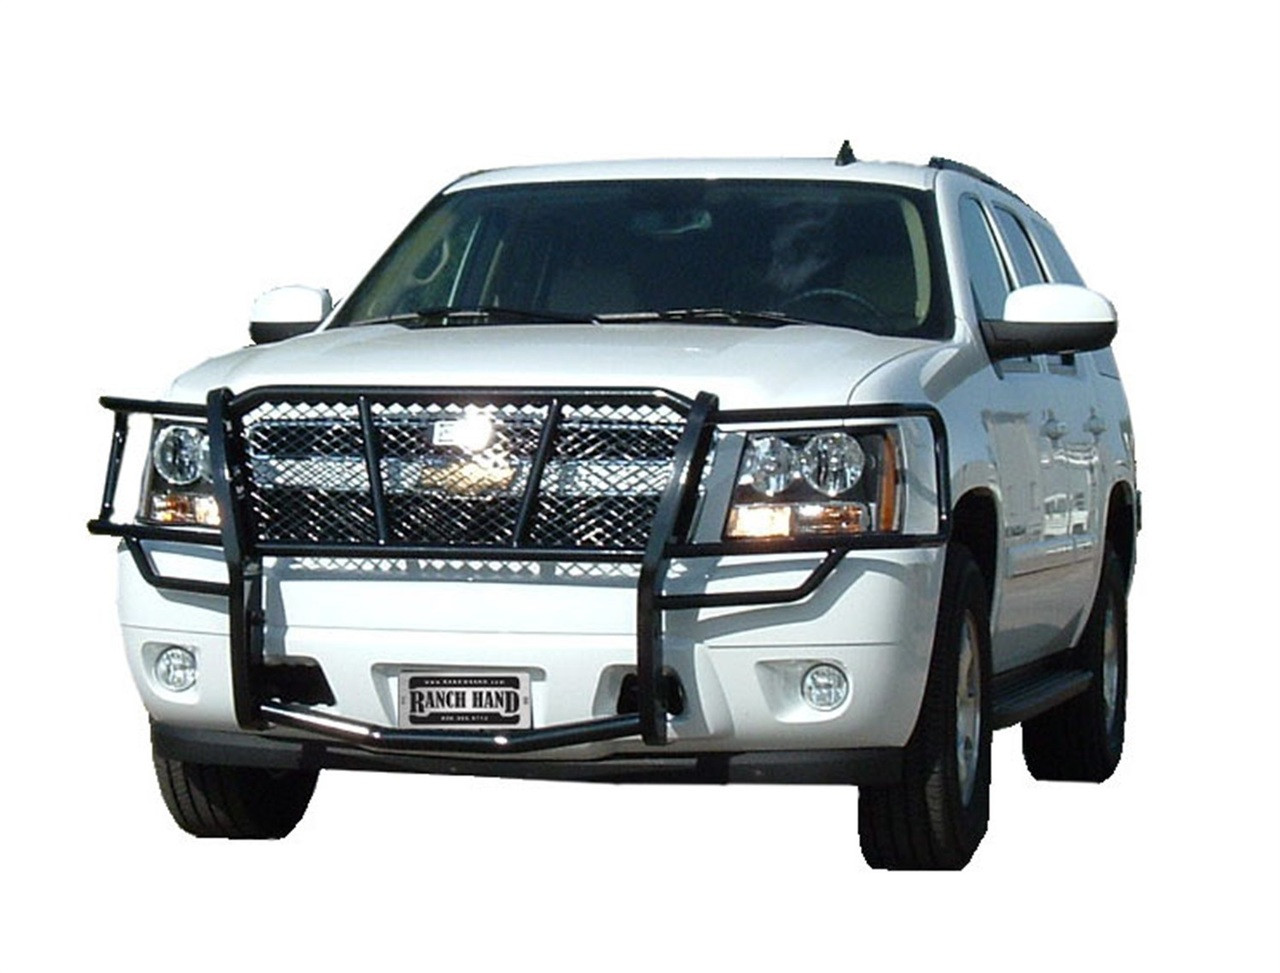 07-13 TAHOE/SUB/AVALANCHE 1500 LEGEND GRILLE GUARD